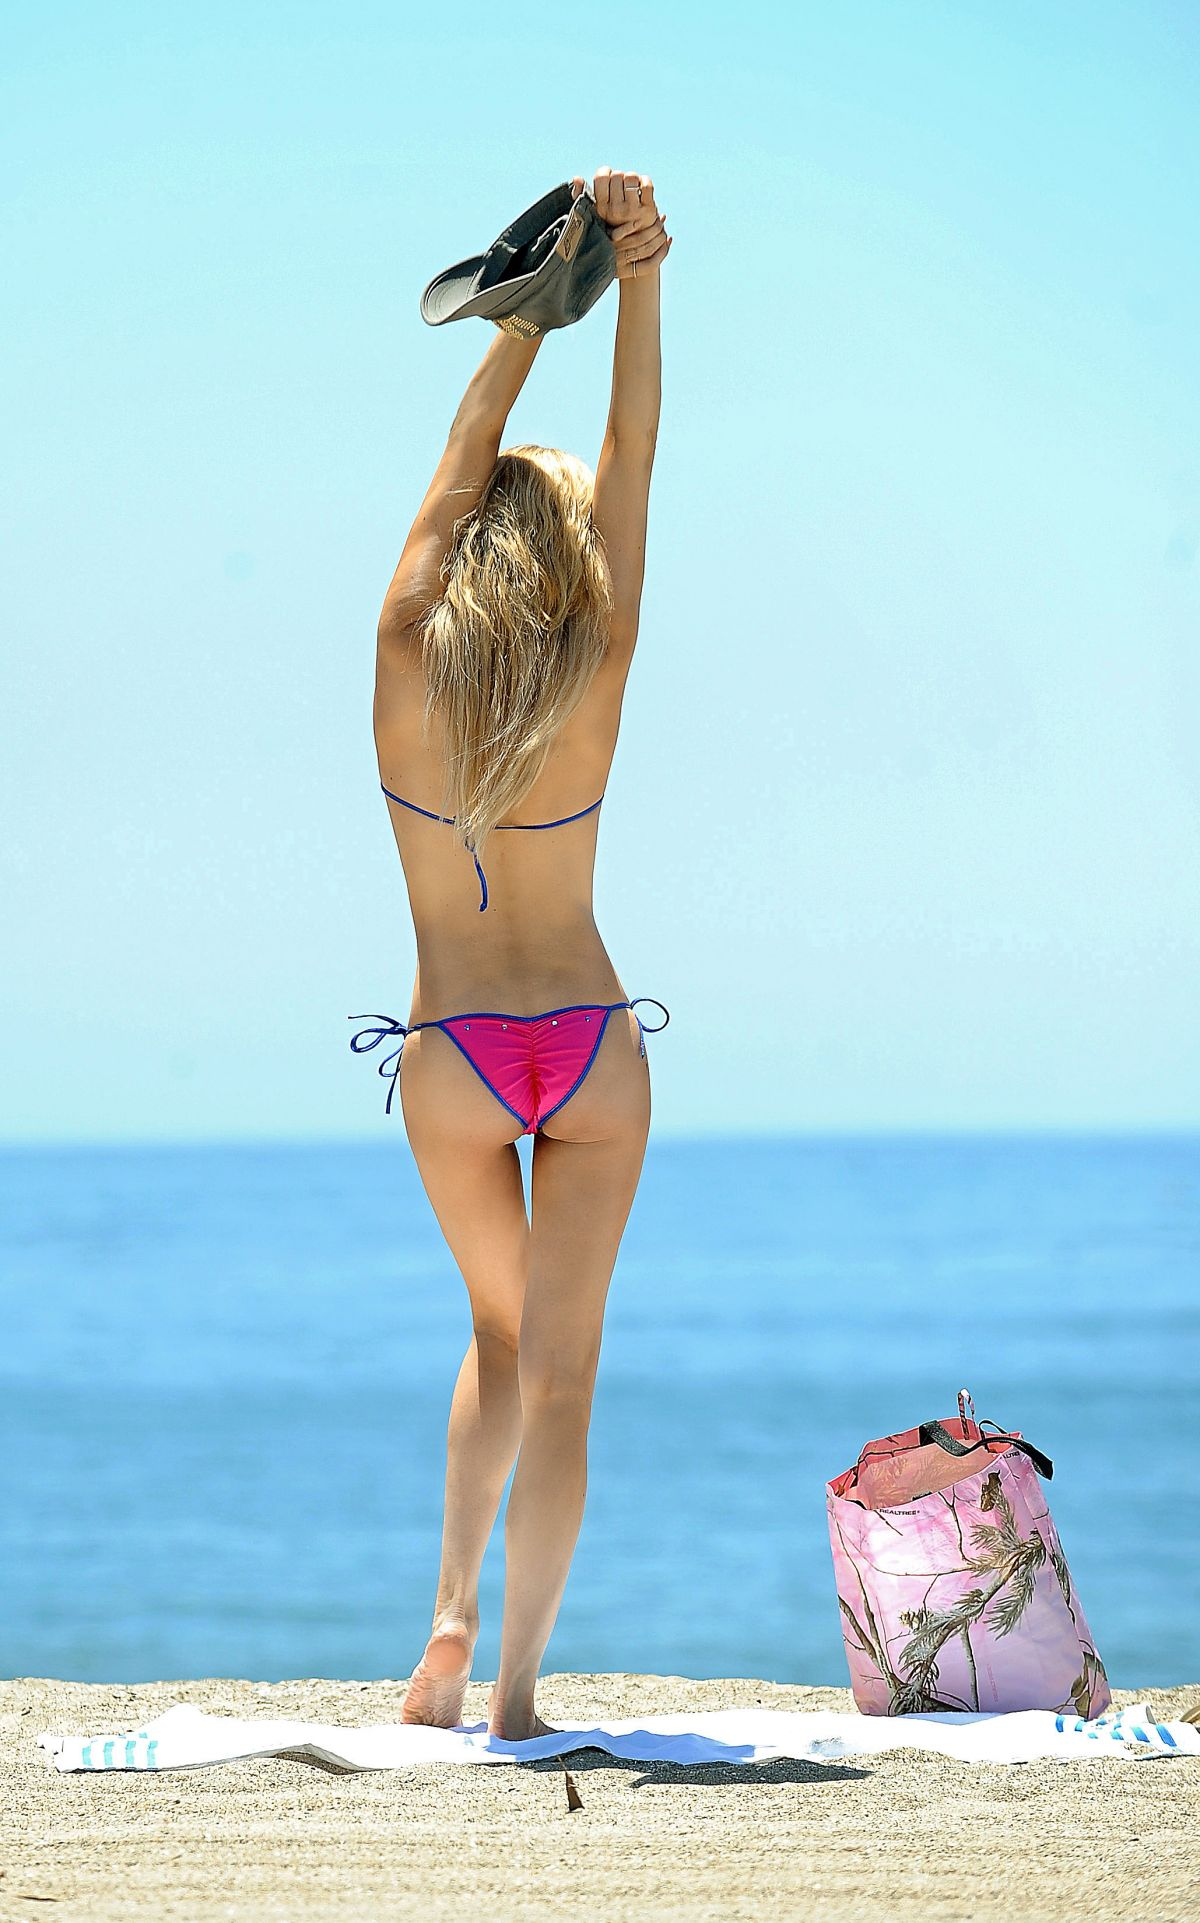 brandi-glanville-in-bikini-at-a-beach-in-los-angeles_12.jpg - 250.47 KB